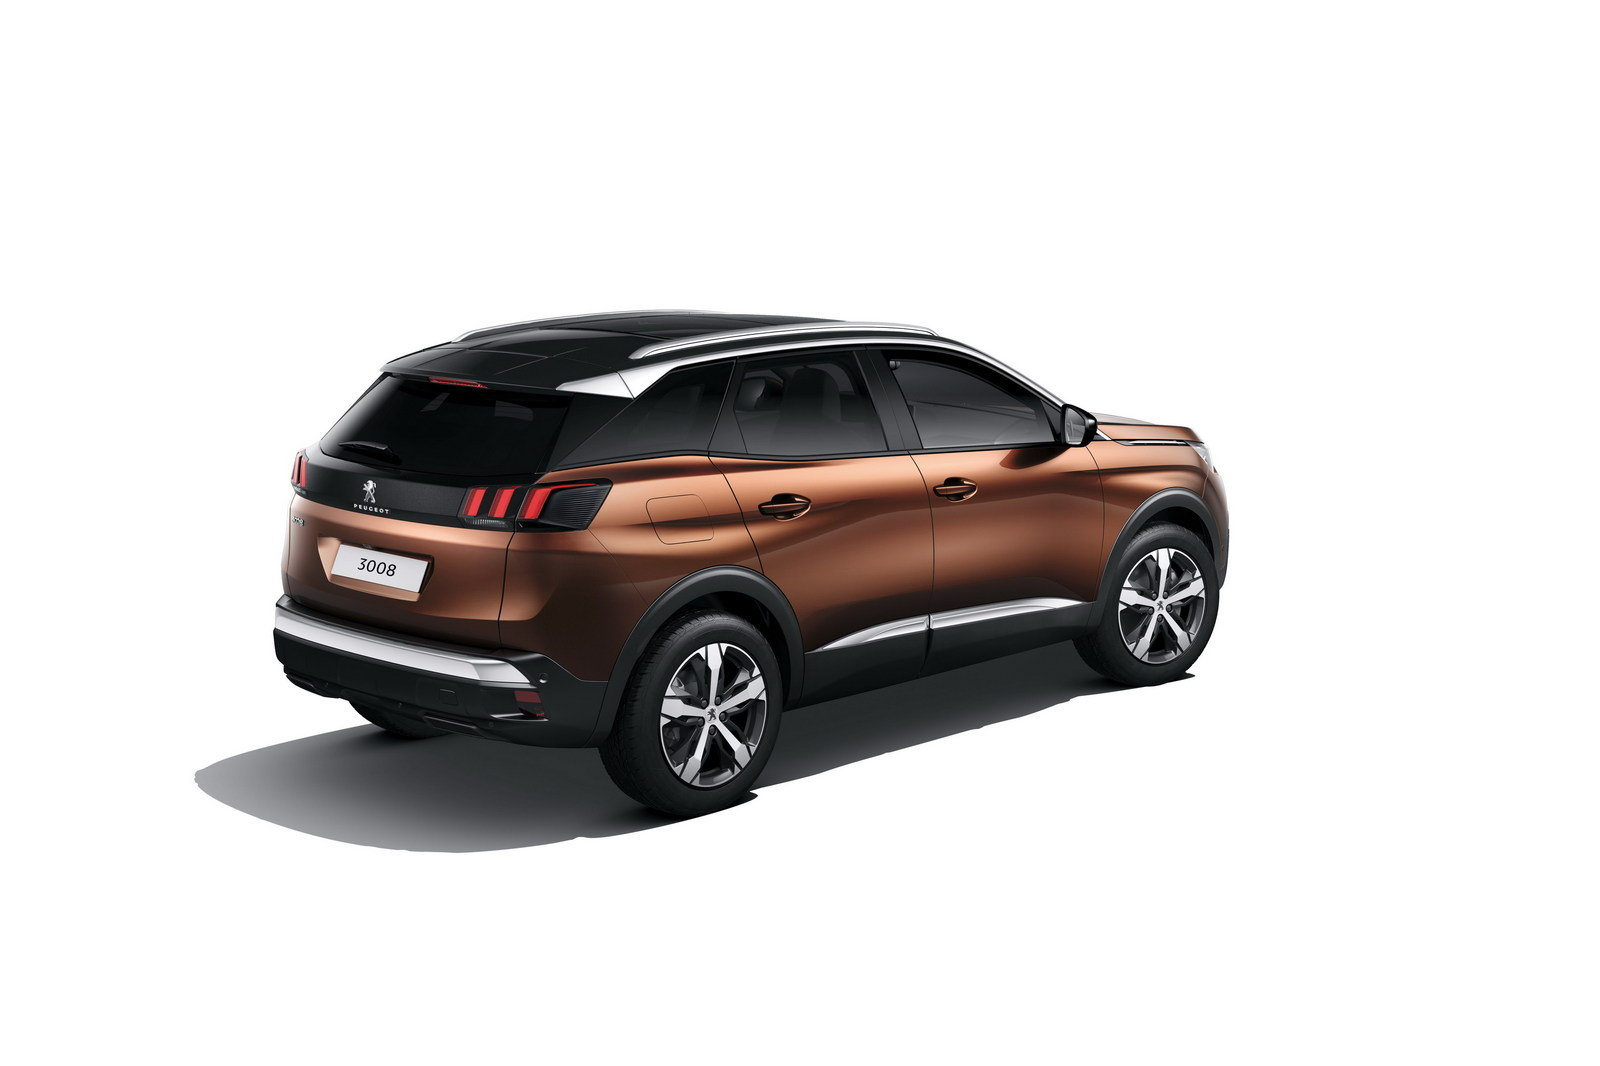 2017 peugeot 3008 picture 676834 car review top speed. Black Bedroom Furniture Sets. Home Design Ideas